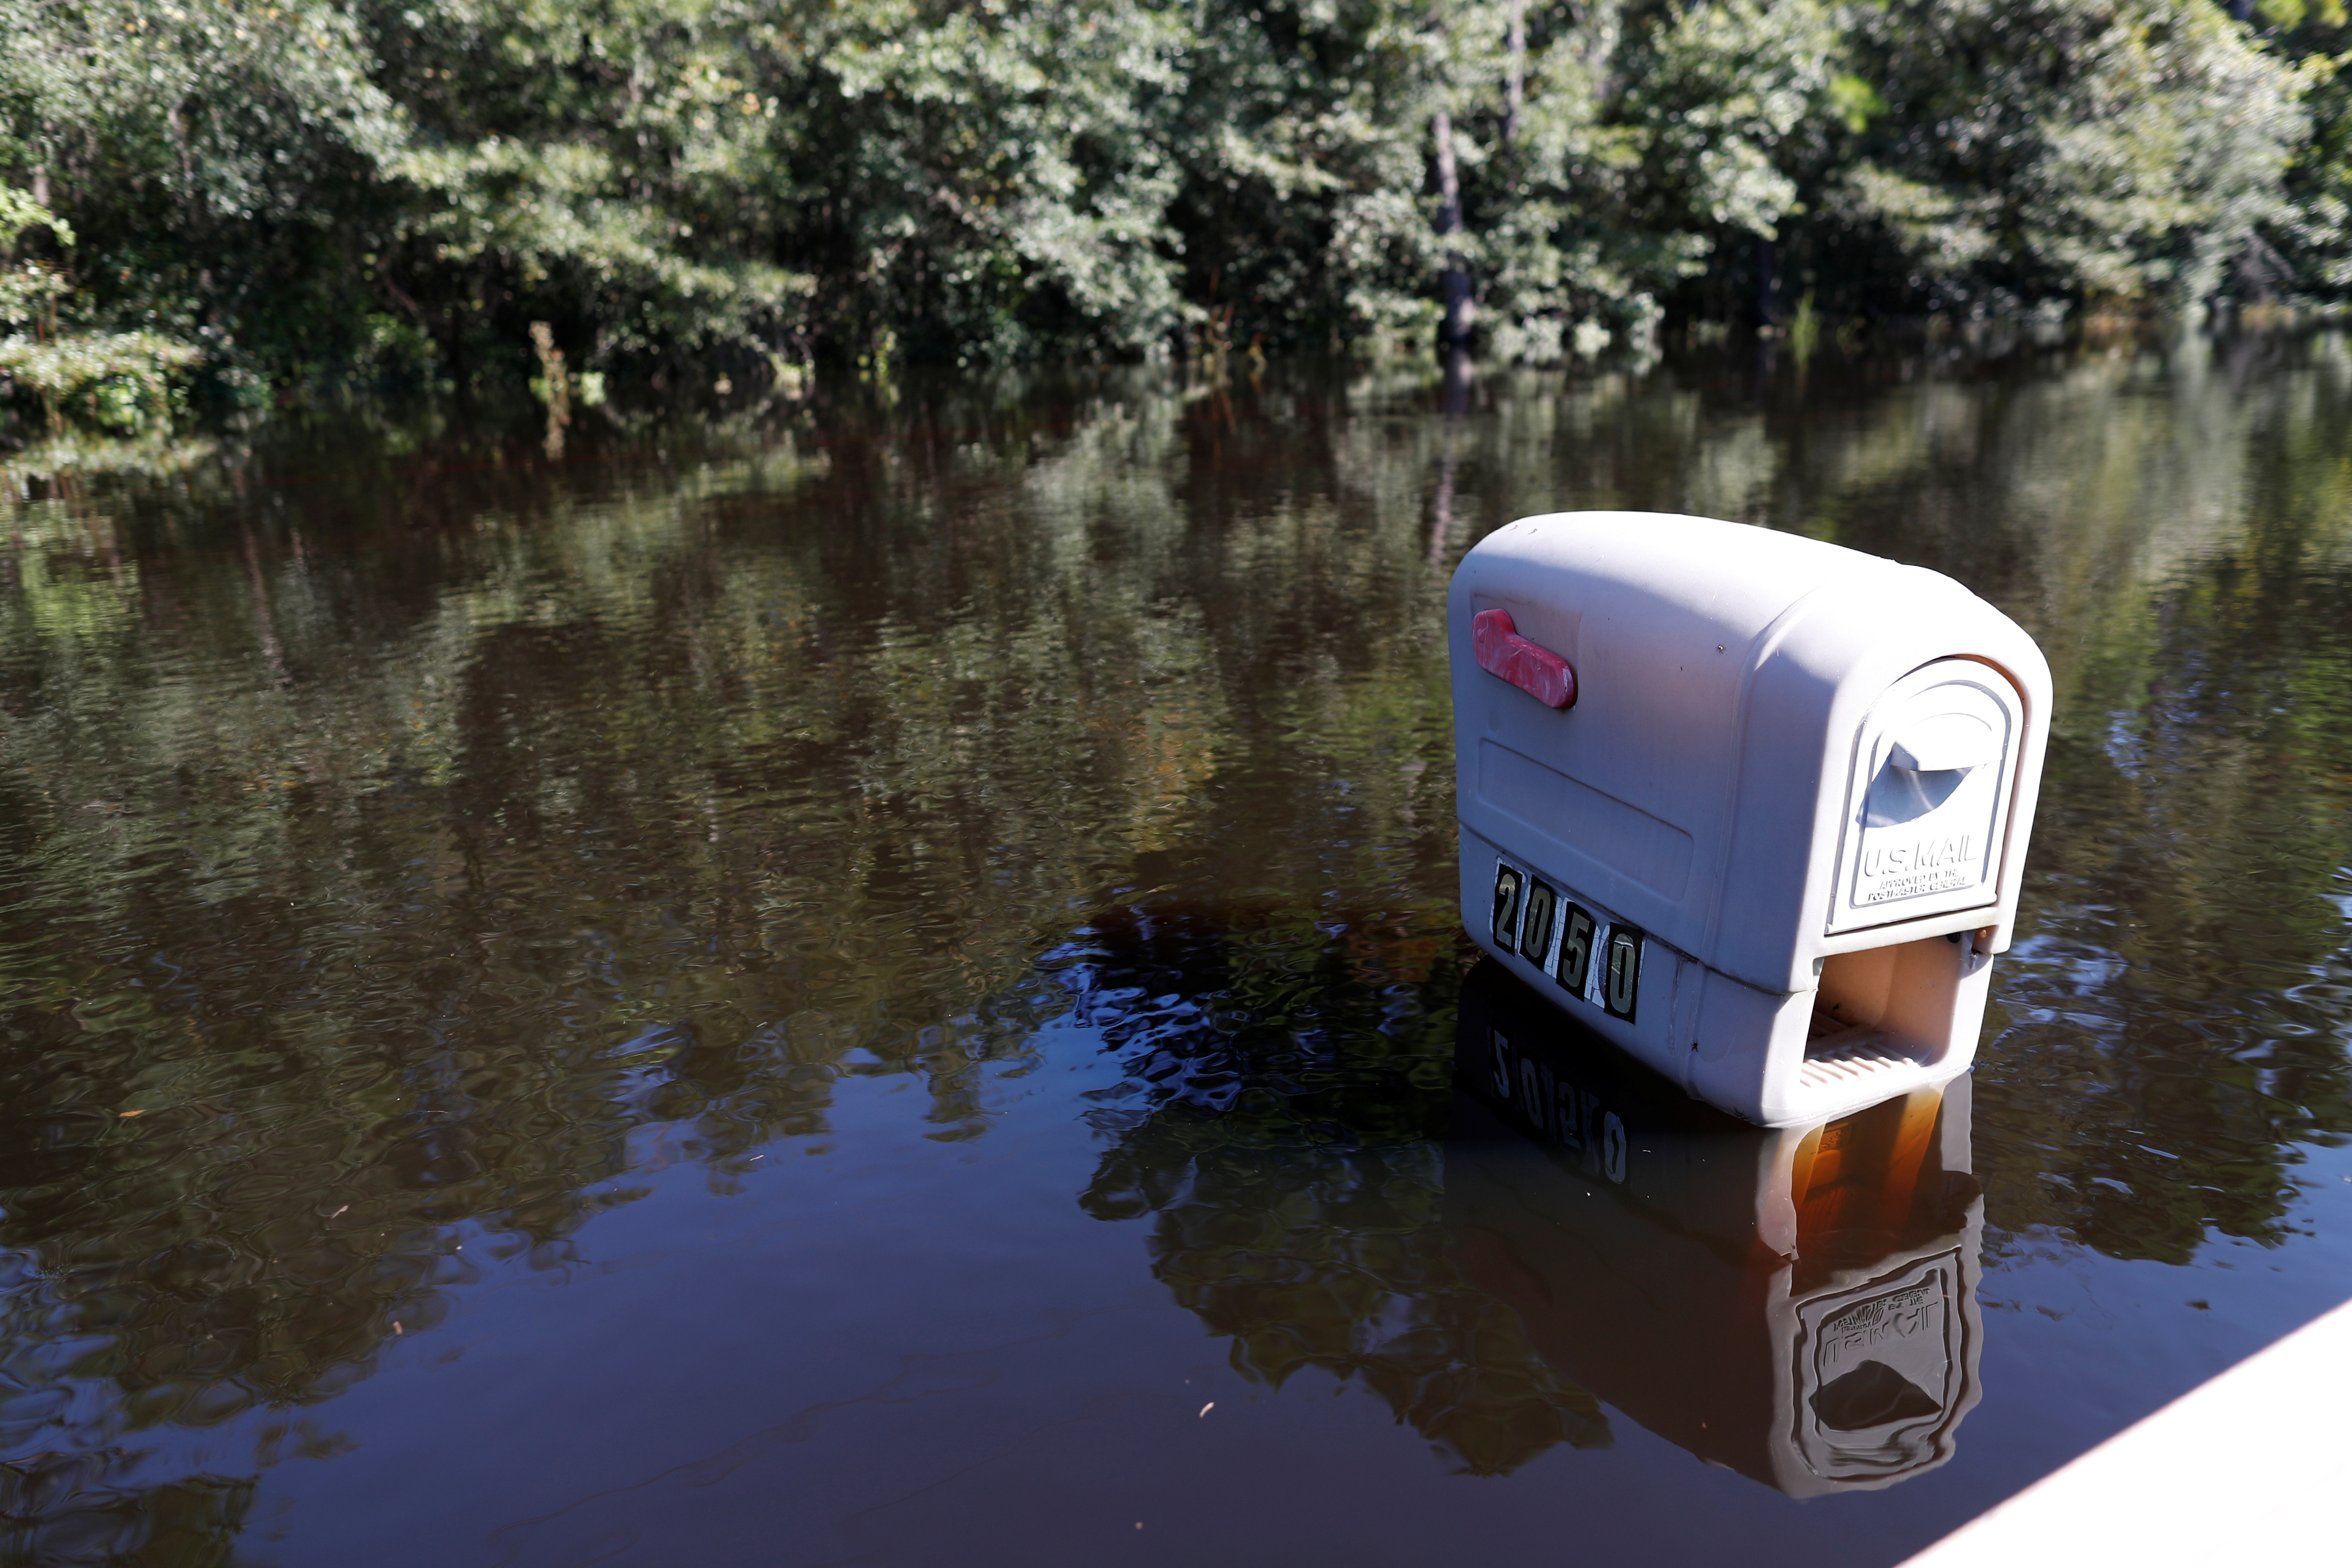 A mailbox is partially submerged by flood waters in the aftermath of Hurricane Florence in Conway, South Carolina, September 19, 2018. REUTERS/Randall Hill. REUTERS/Randall Hill